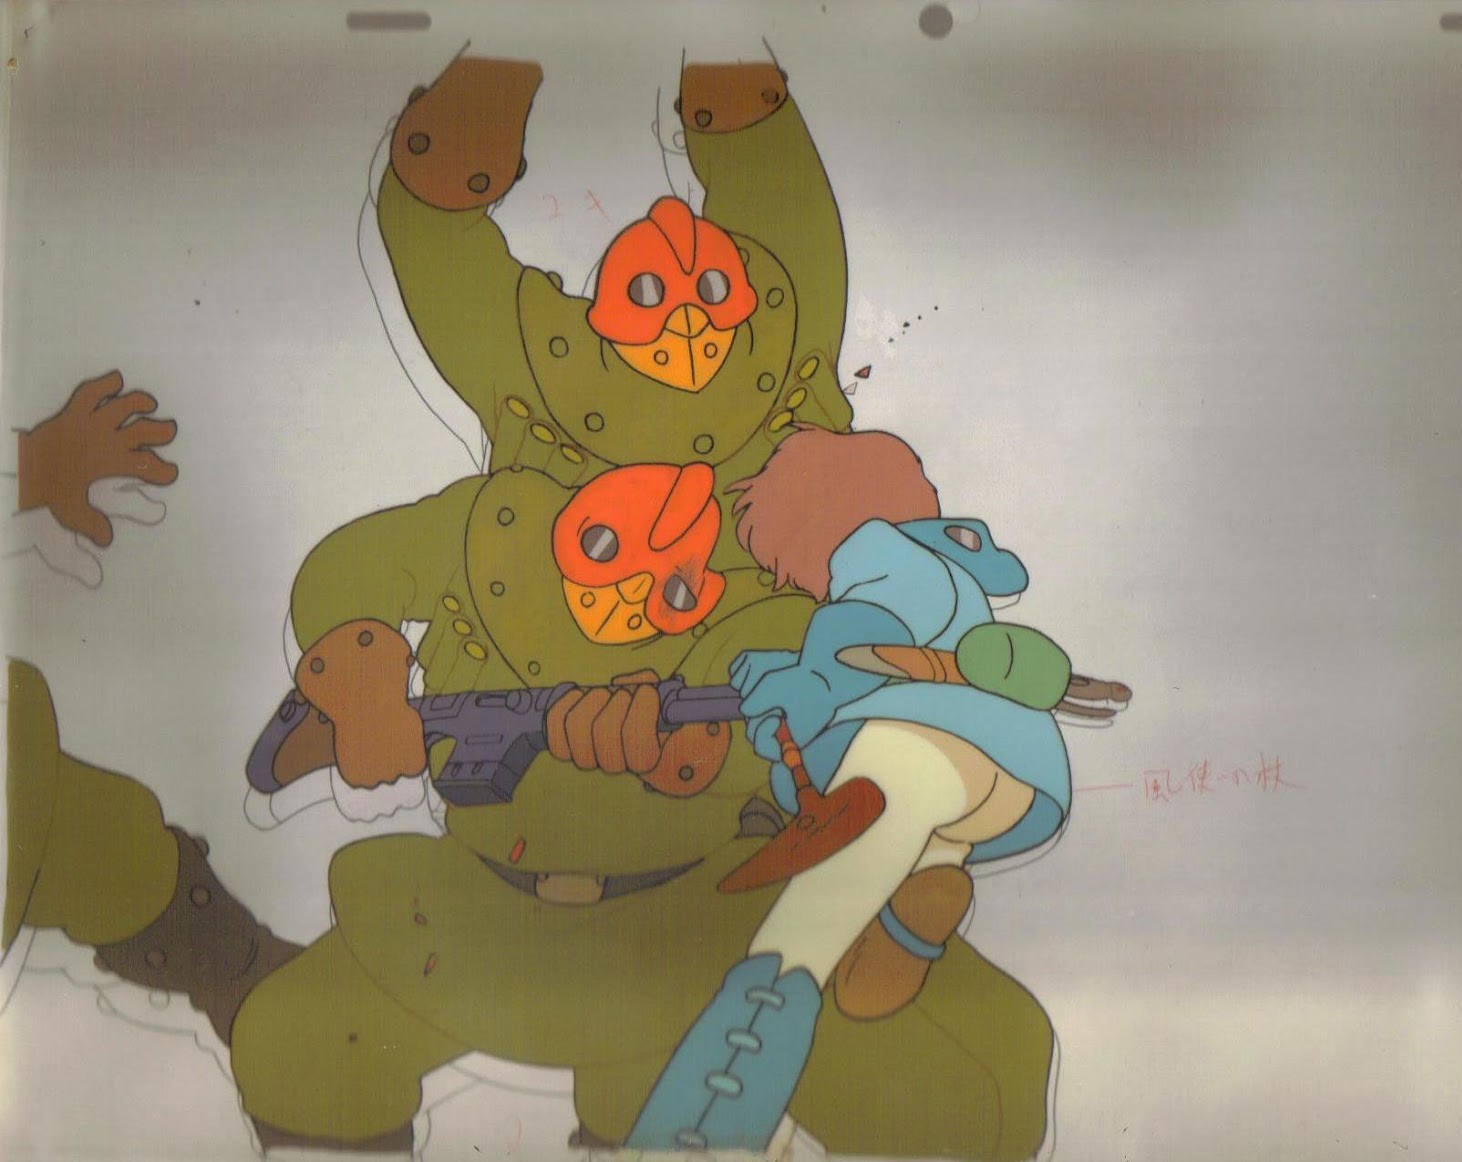 nausicaa_of_the_valley_of_the_wind_concept_art_cel_11.jpg